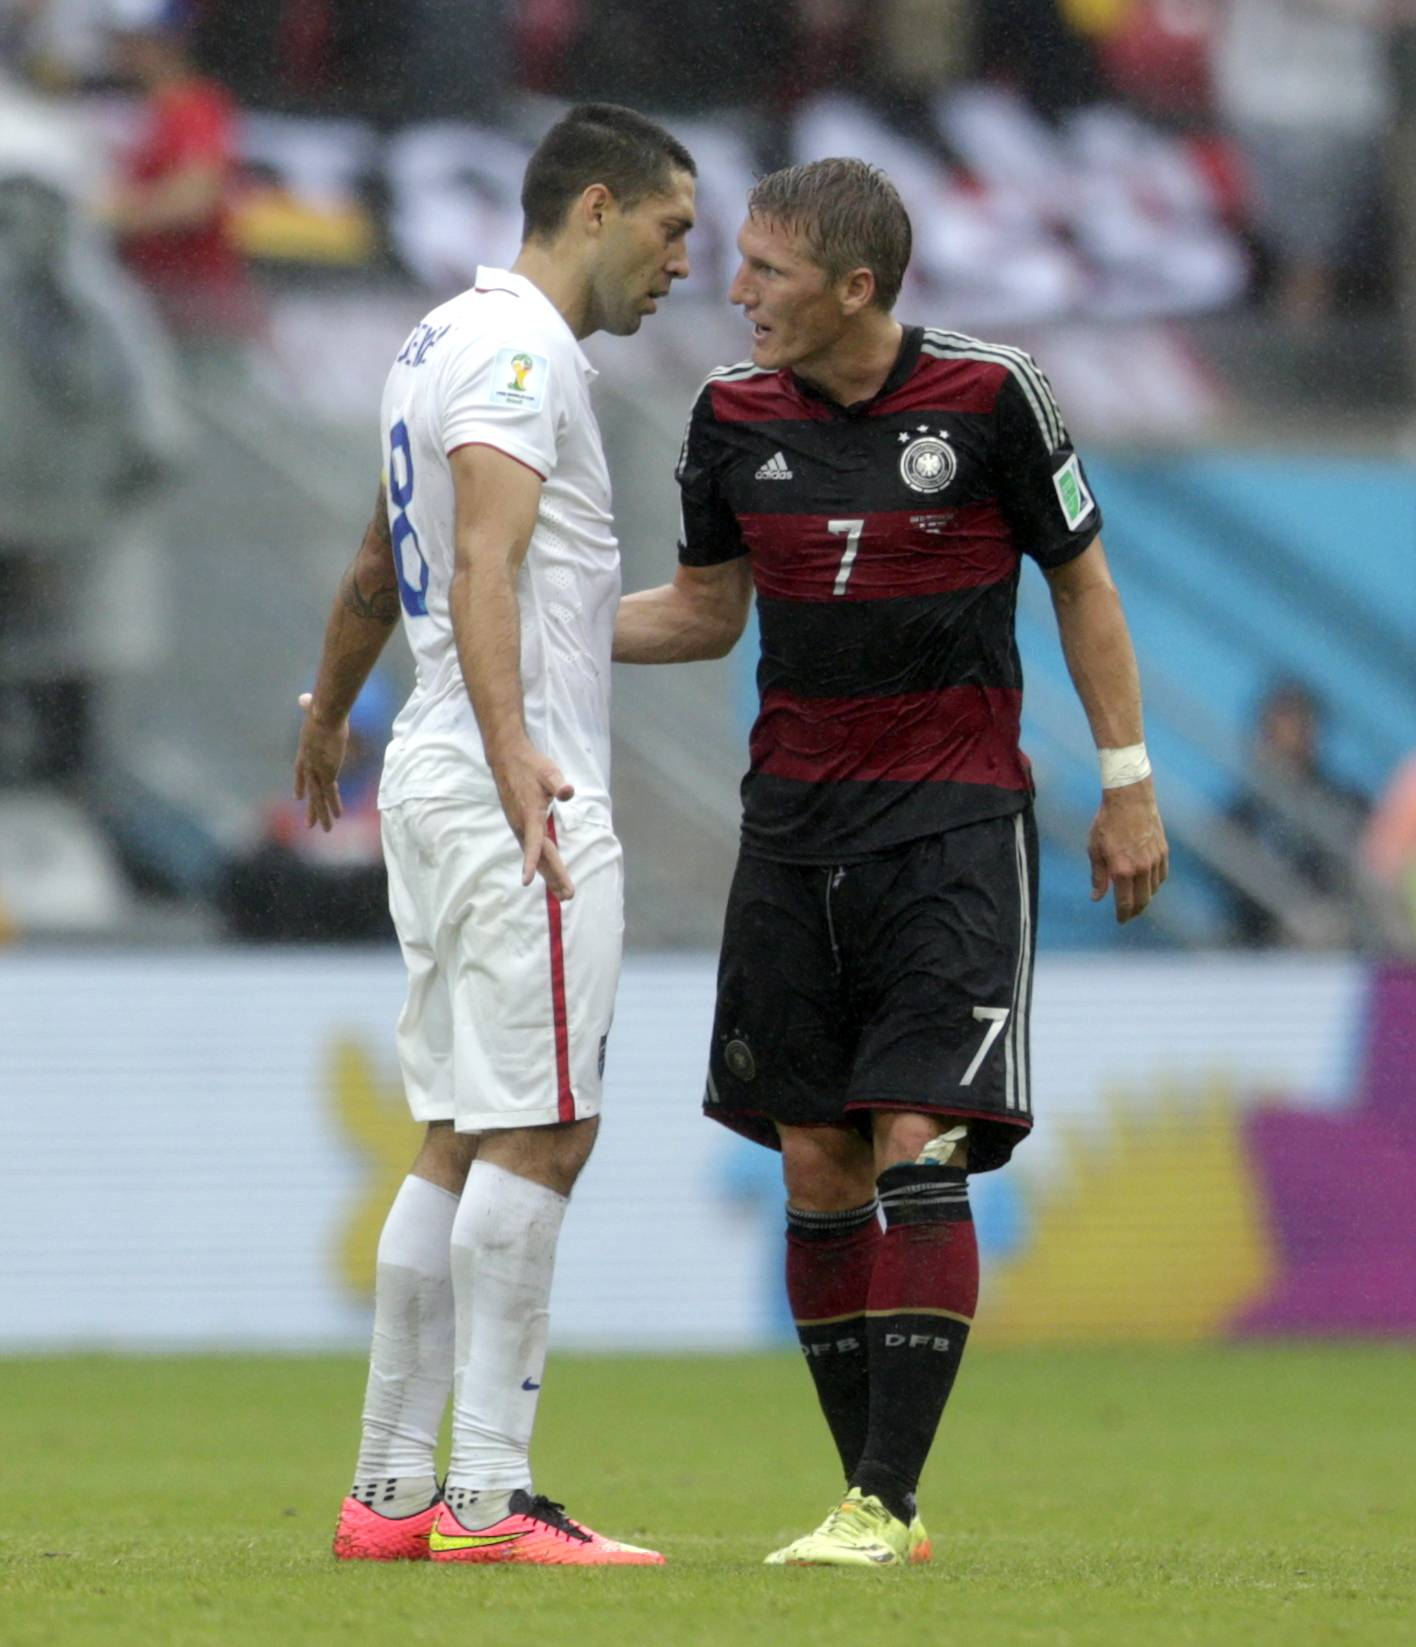 United States' Clint Dempsey argues with Germany's Bastian Schweinsteiger at the half during the group G World Cup soccer match between the United States and Germany at the Arena Pernambuco in Recife, Brazil, Thursday, June 26, 2014.